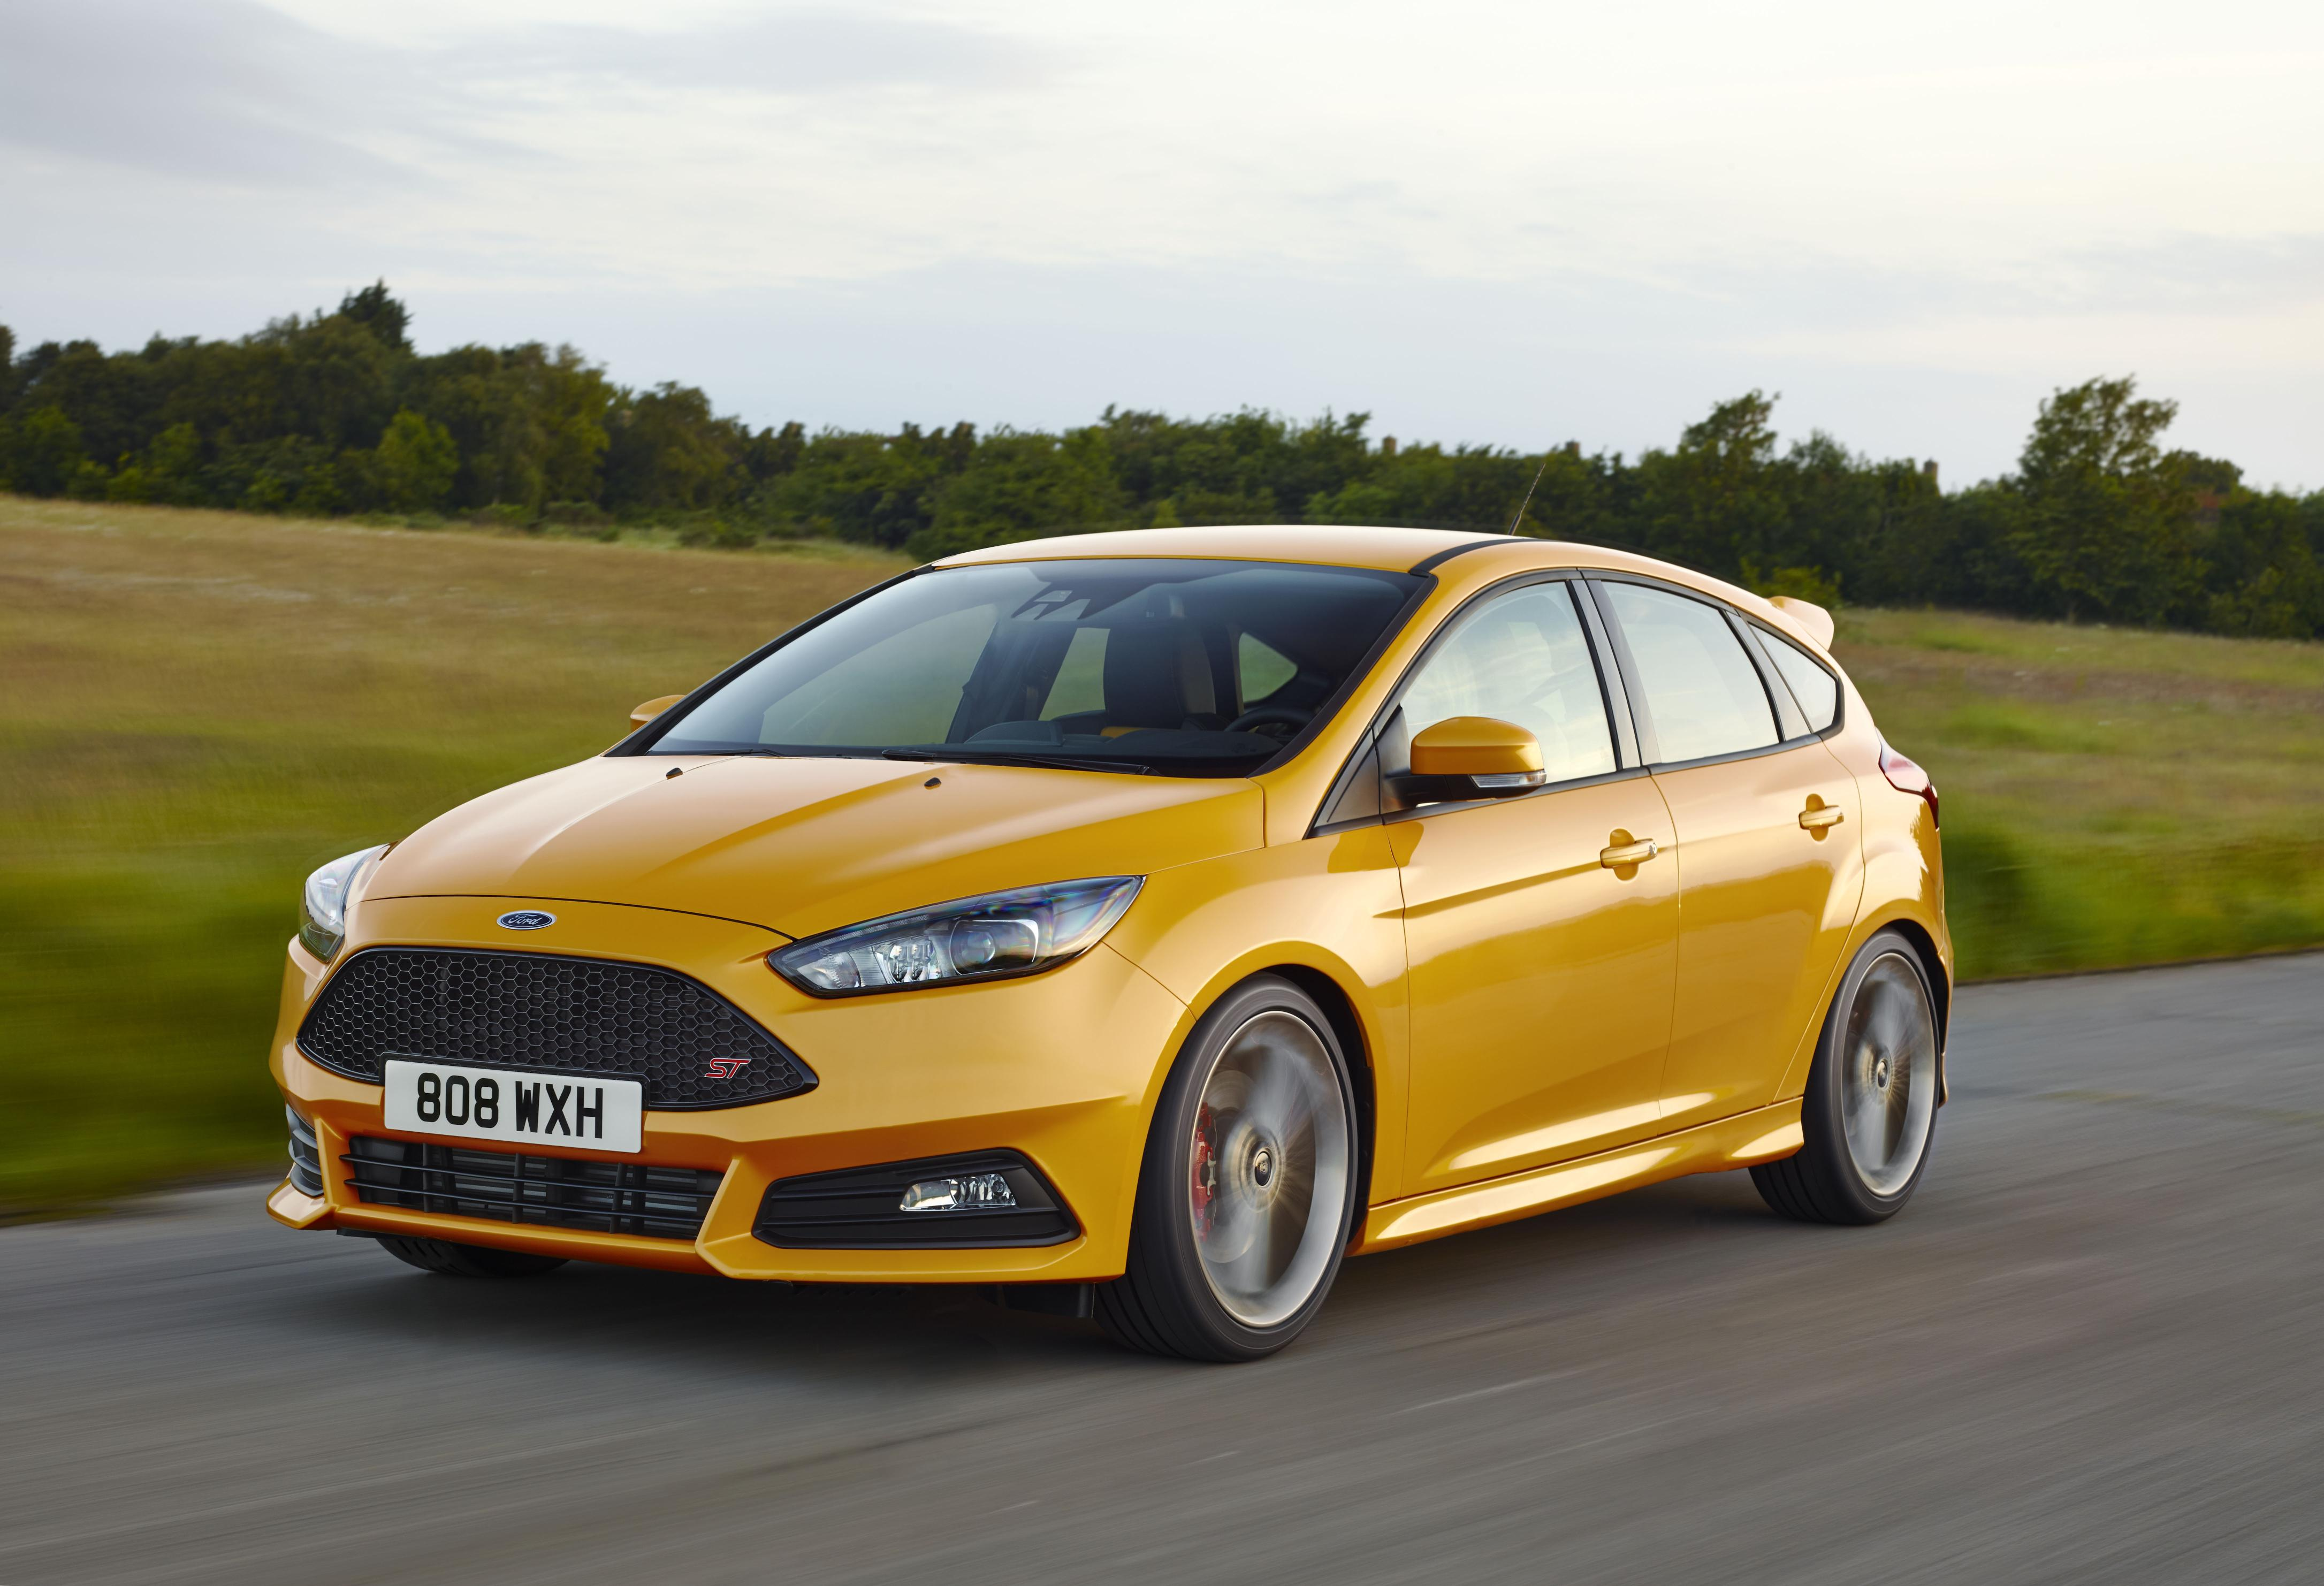 new 2015 ford focus st pricing revealed for the uk autoevolution. Black Bedroom Furniture Sets. Home Design Ideas